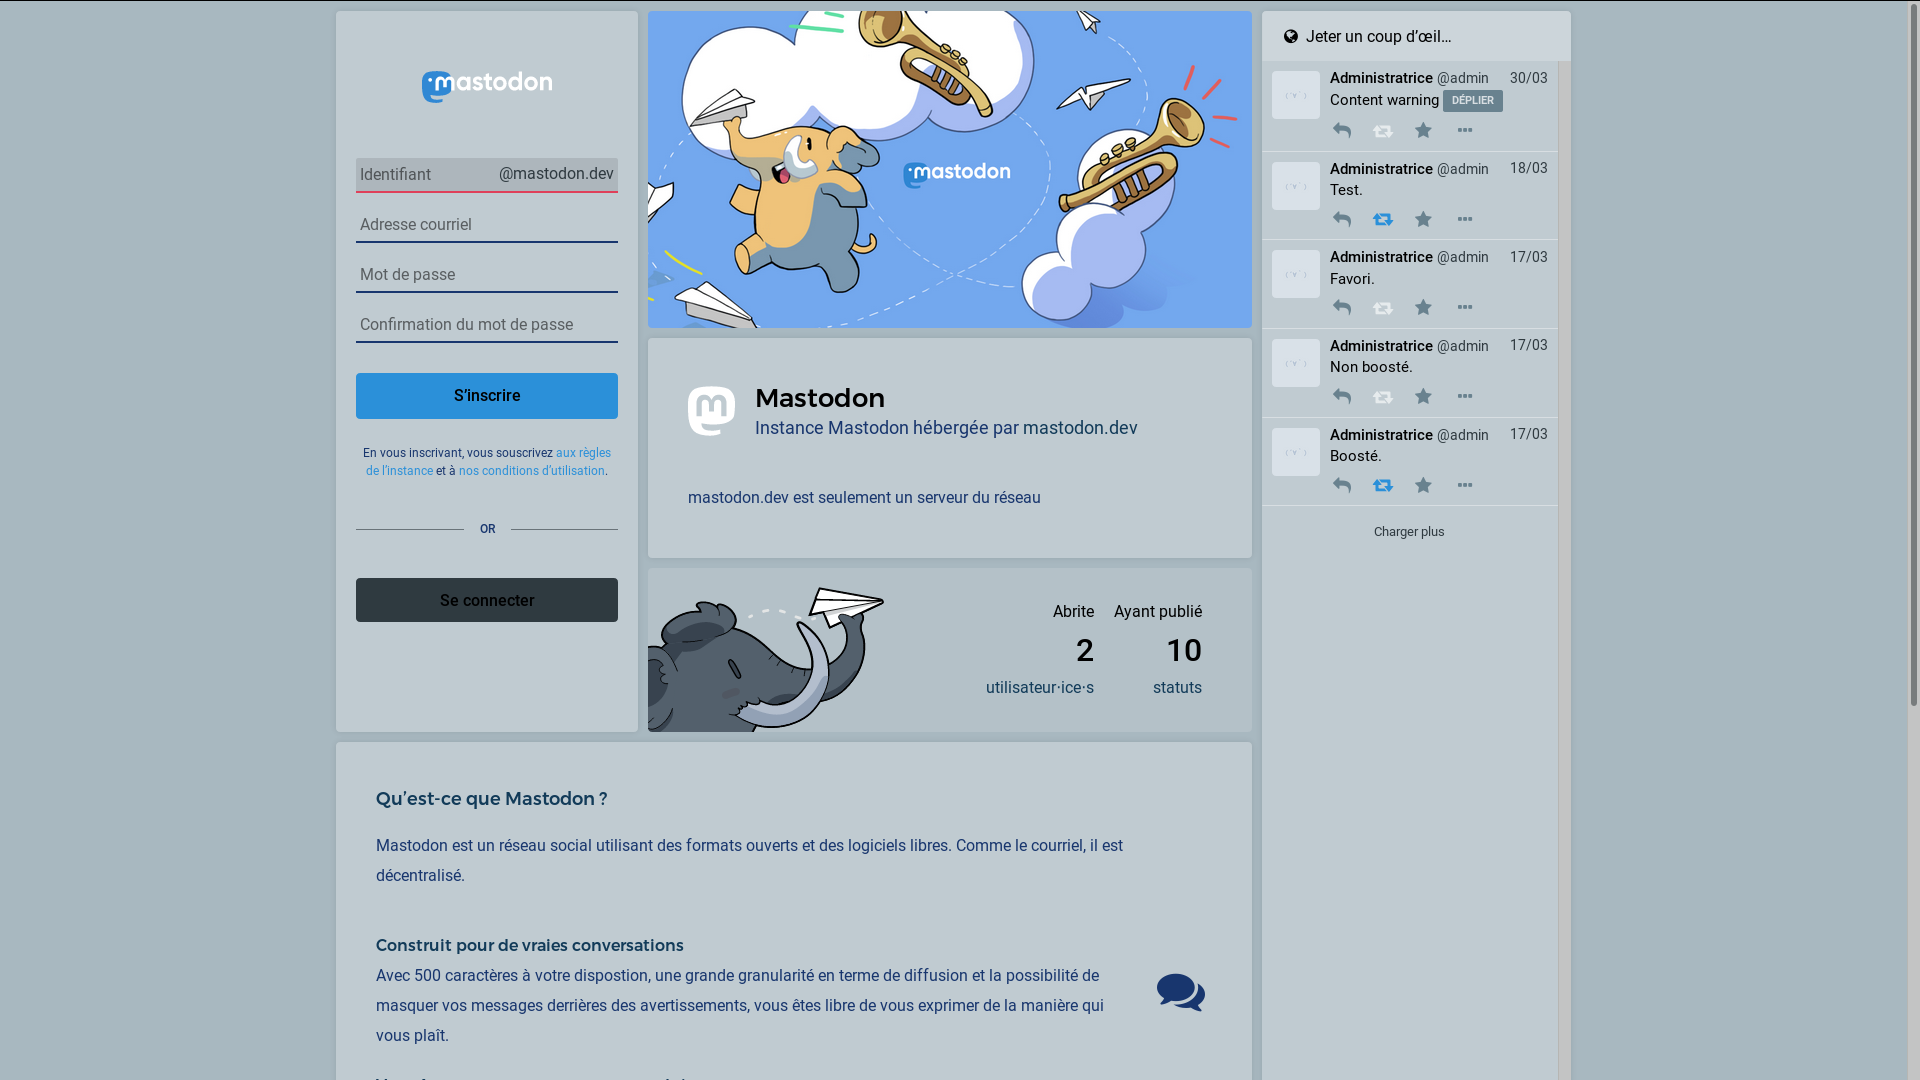 Mastodon's landing page with a clear theme